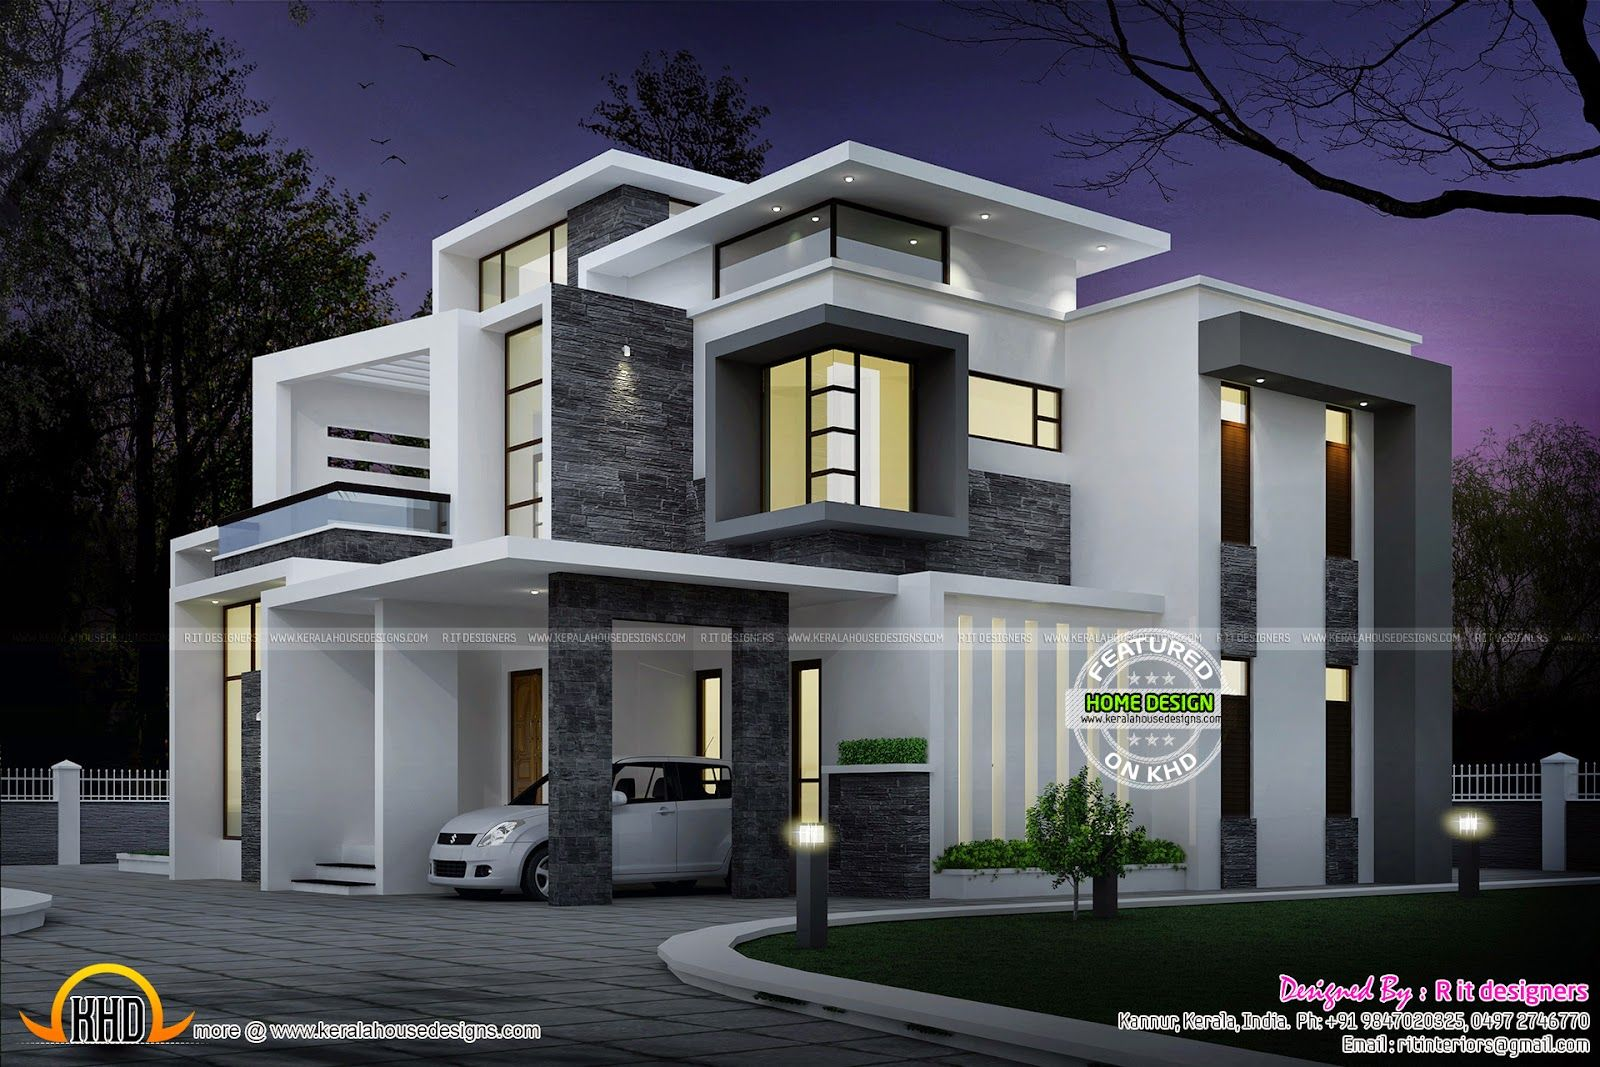 Side Elevation View Grand Contemporary Home Design Night View Of 3 Bedroom Attached Beau Kerala House Design Contemporary House Contemporary House Design